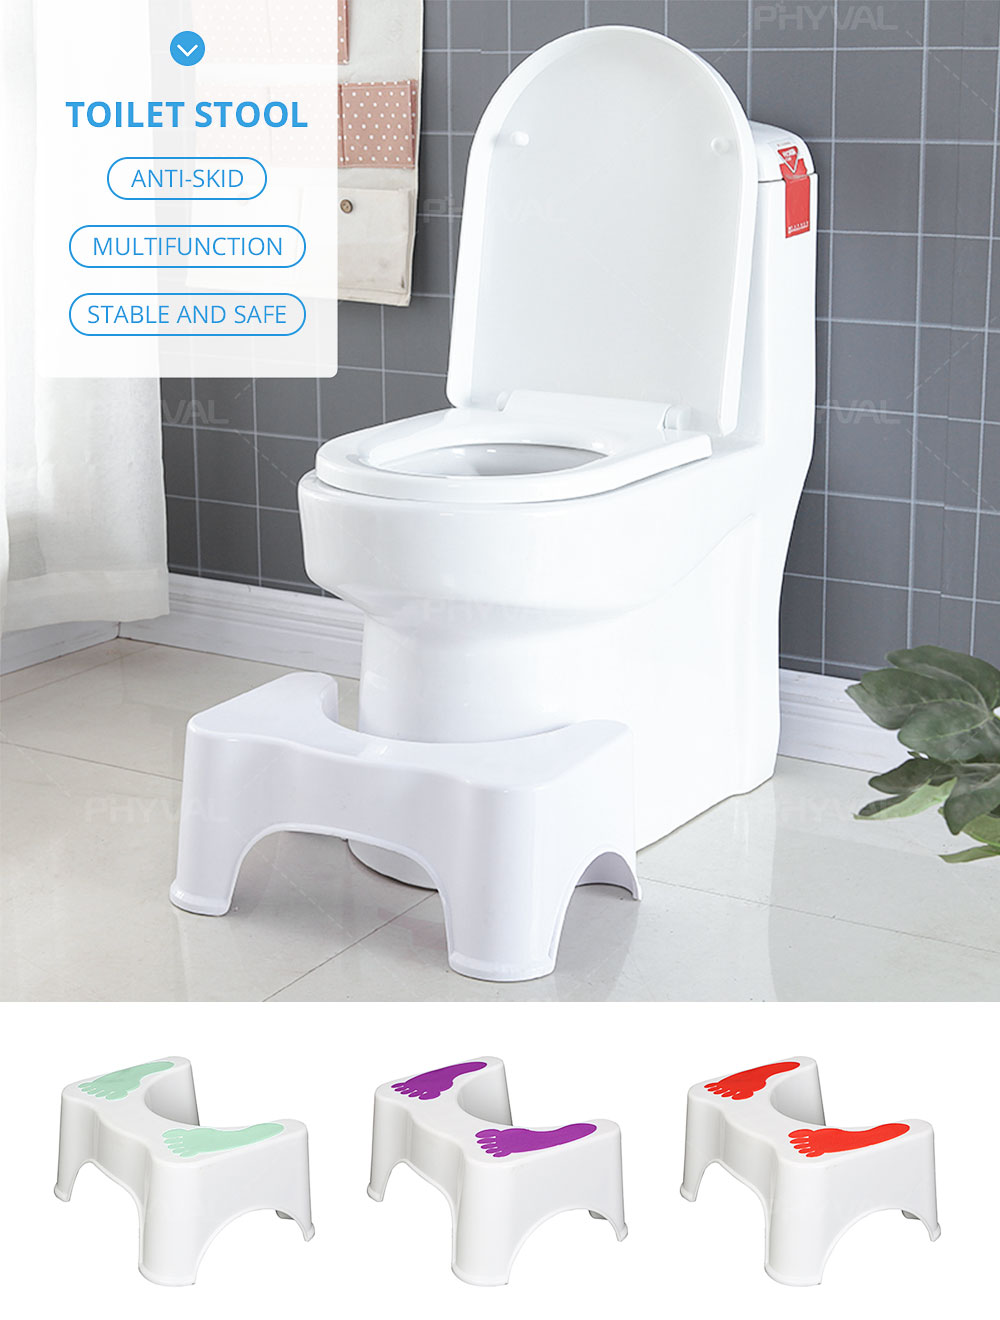 Excellent Us 12 38 40 Off Toilet Stool Footstool Step Stool Toilet Bowl Step Stool Bathroom Stool Squatting Children Pregnant Women Footstool 47 33 21Cm In Machost Co Dining Chair Design Ideas Machostcouk